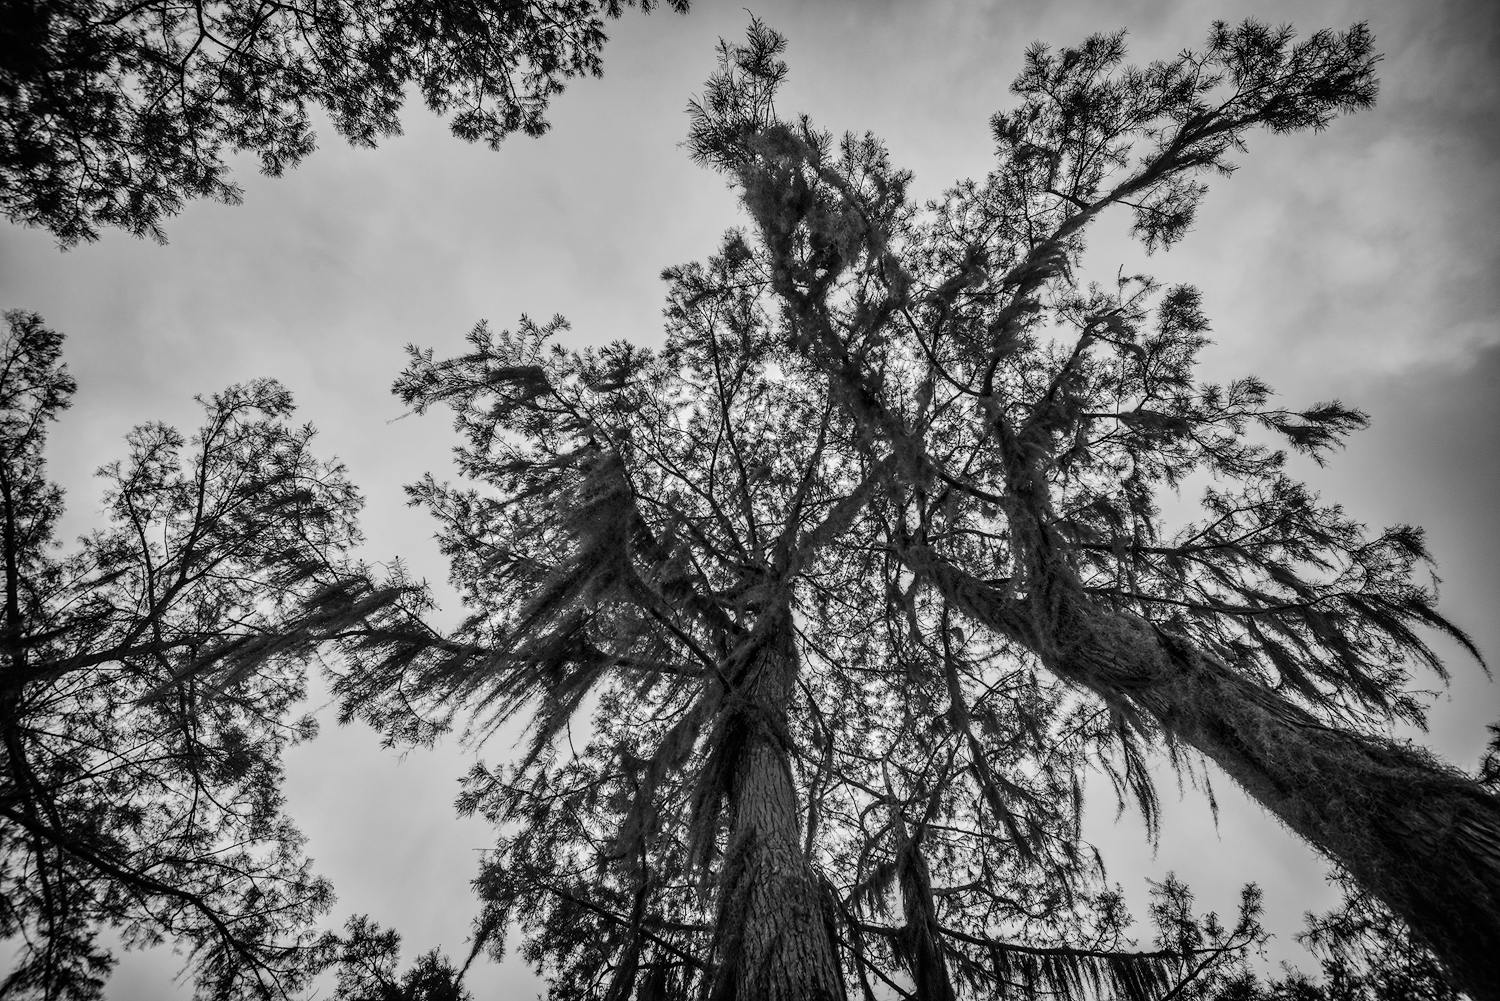 A Cloudy day in the Atchafalaya Basin